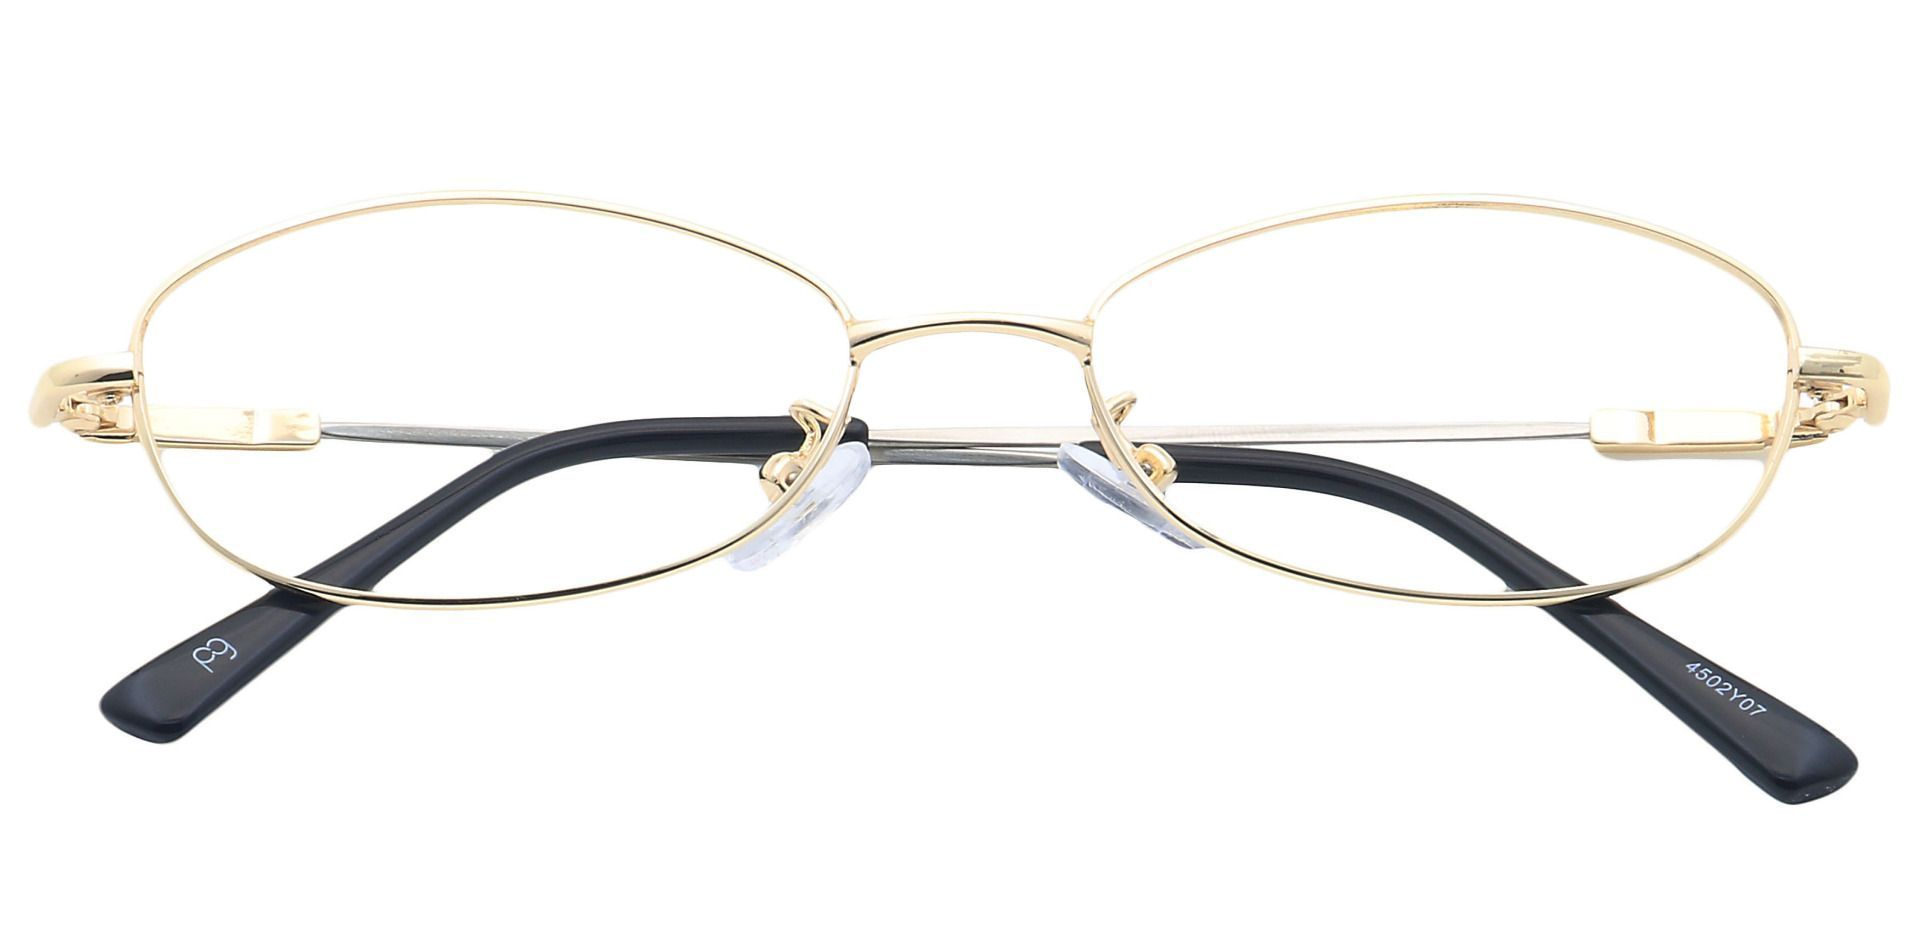 Coronation Oval Eyeglasses Frame - Yellow